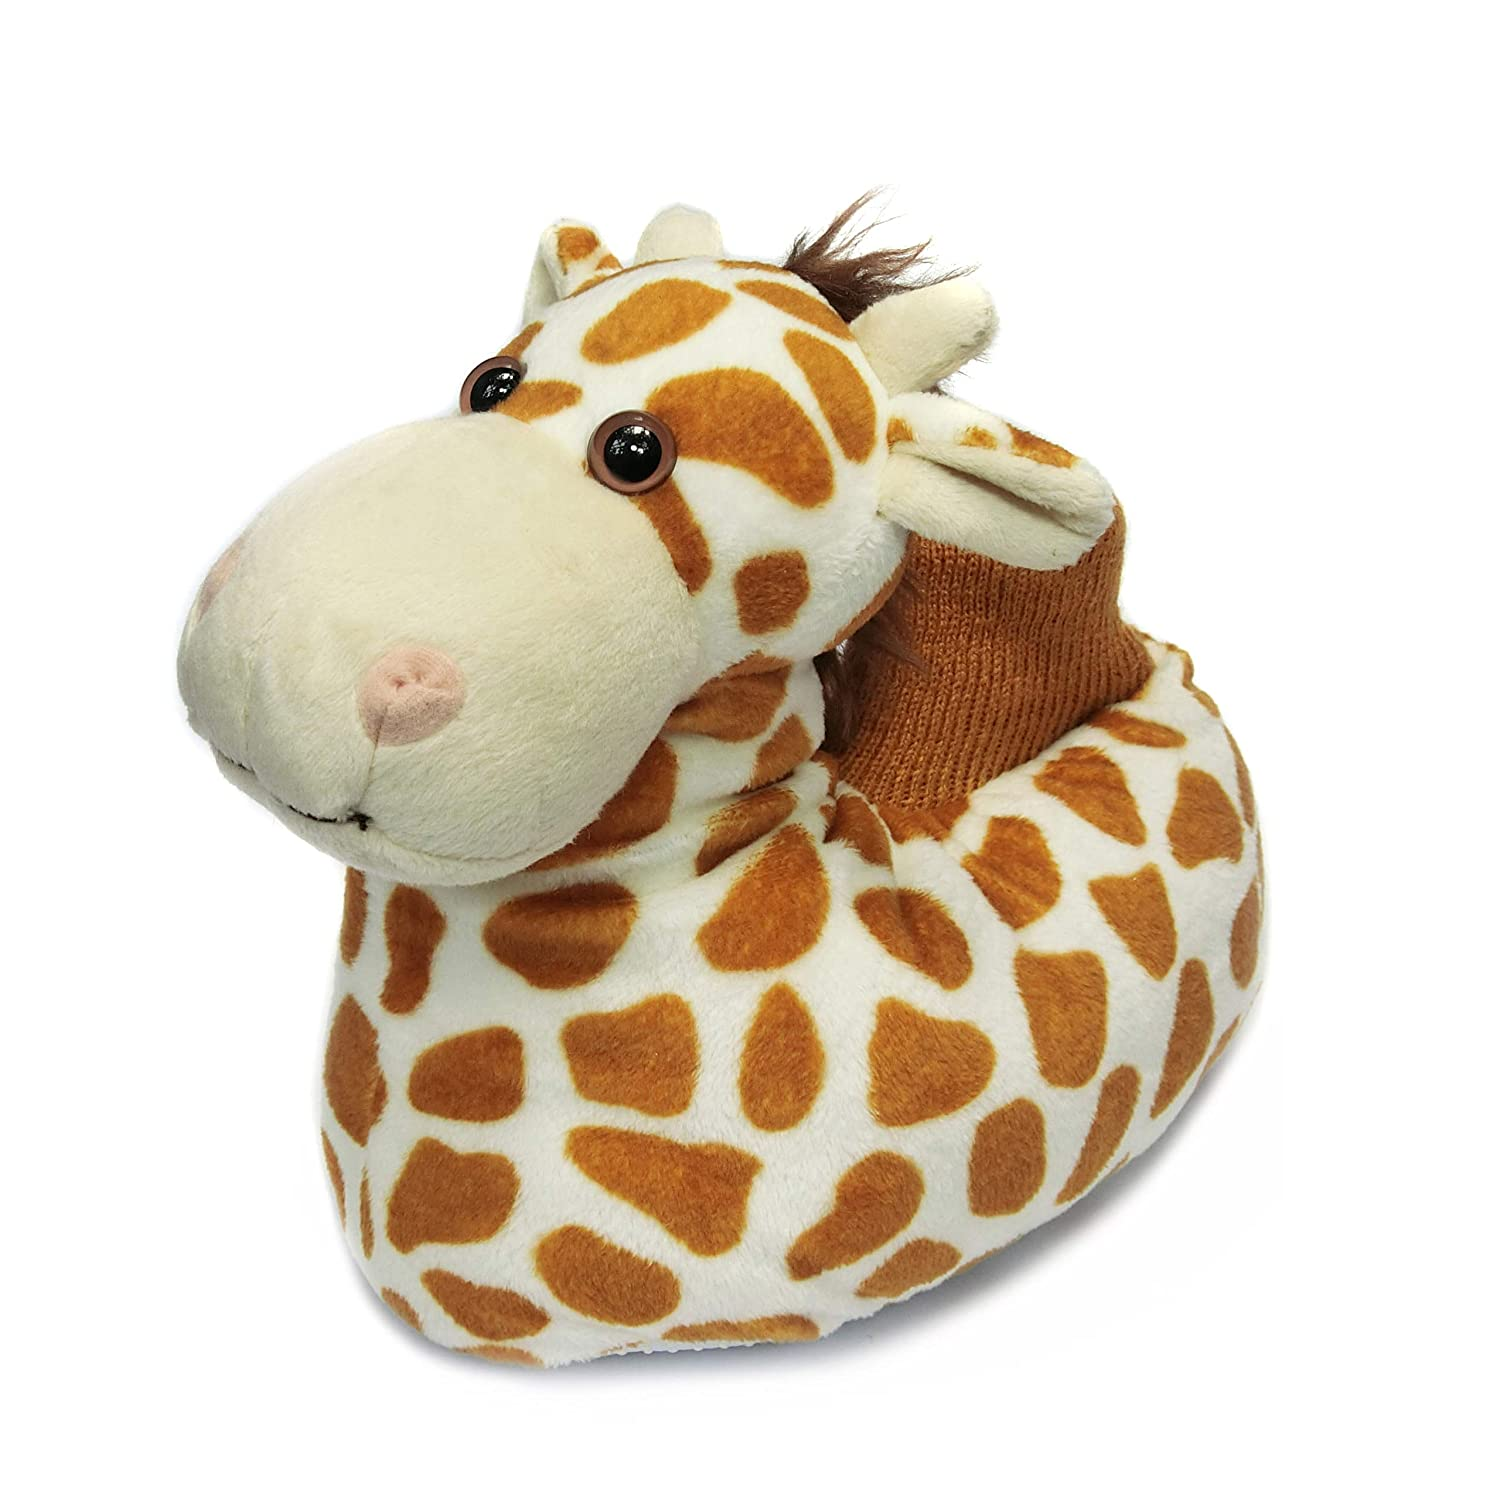 Onmygogo Fuzzy Winter Animal Giraffe Slippers for Toddler and Little Kids AS-K-moose